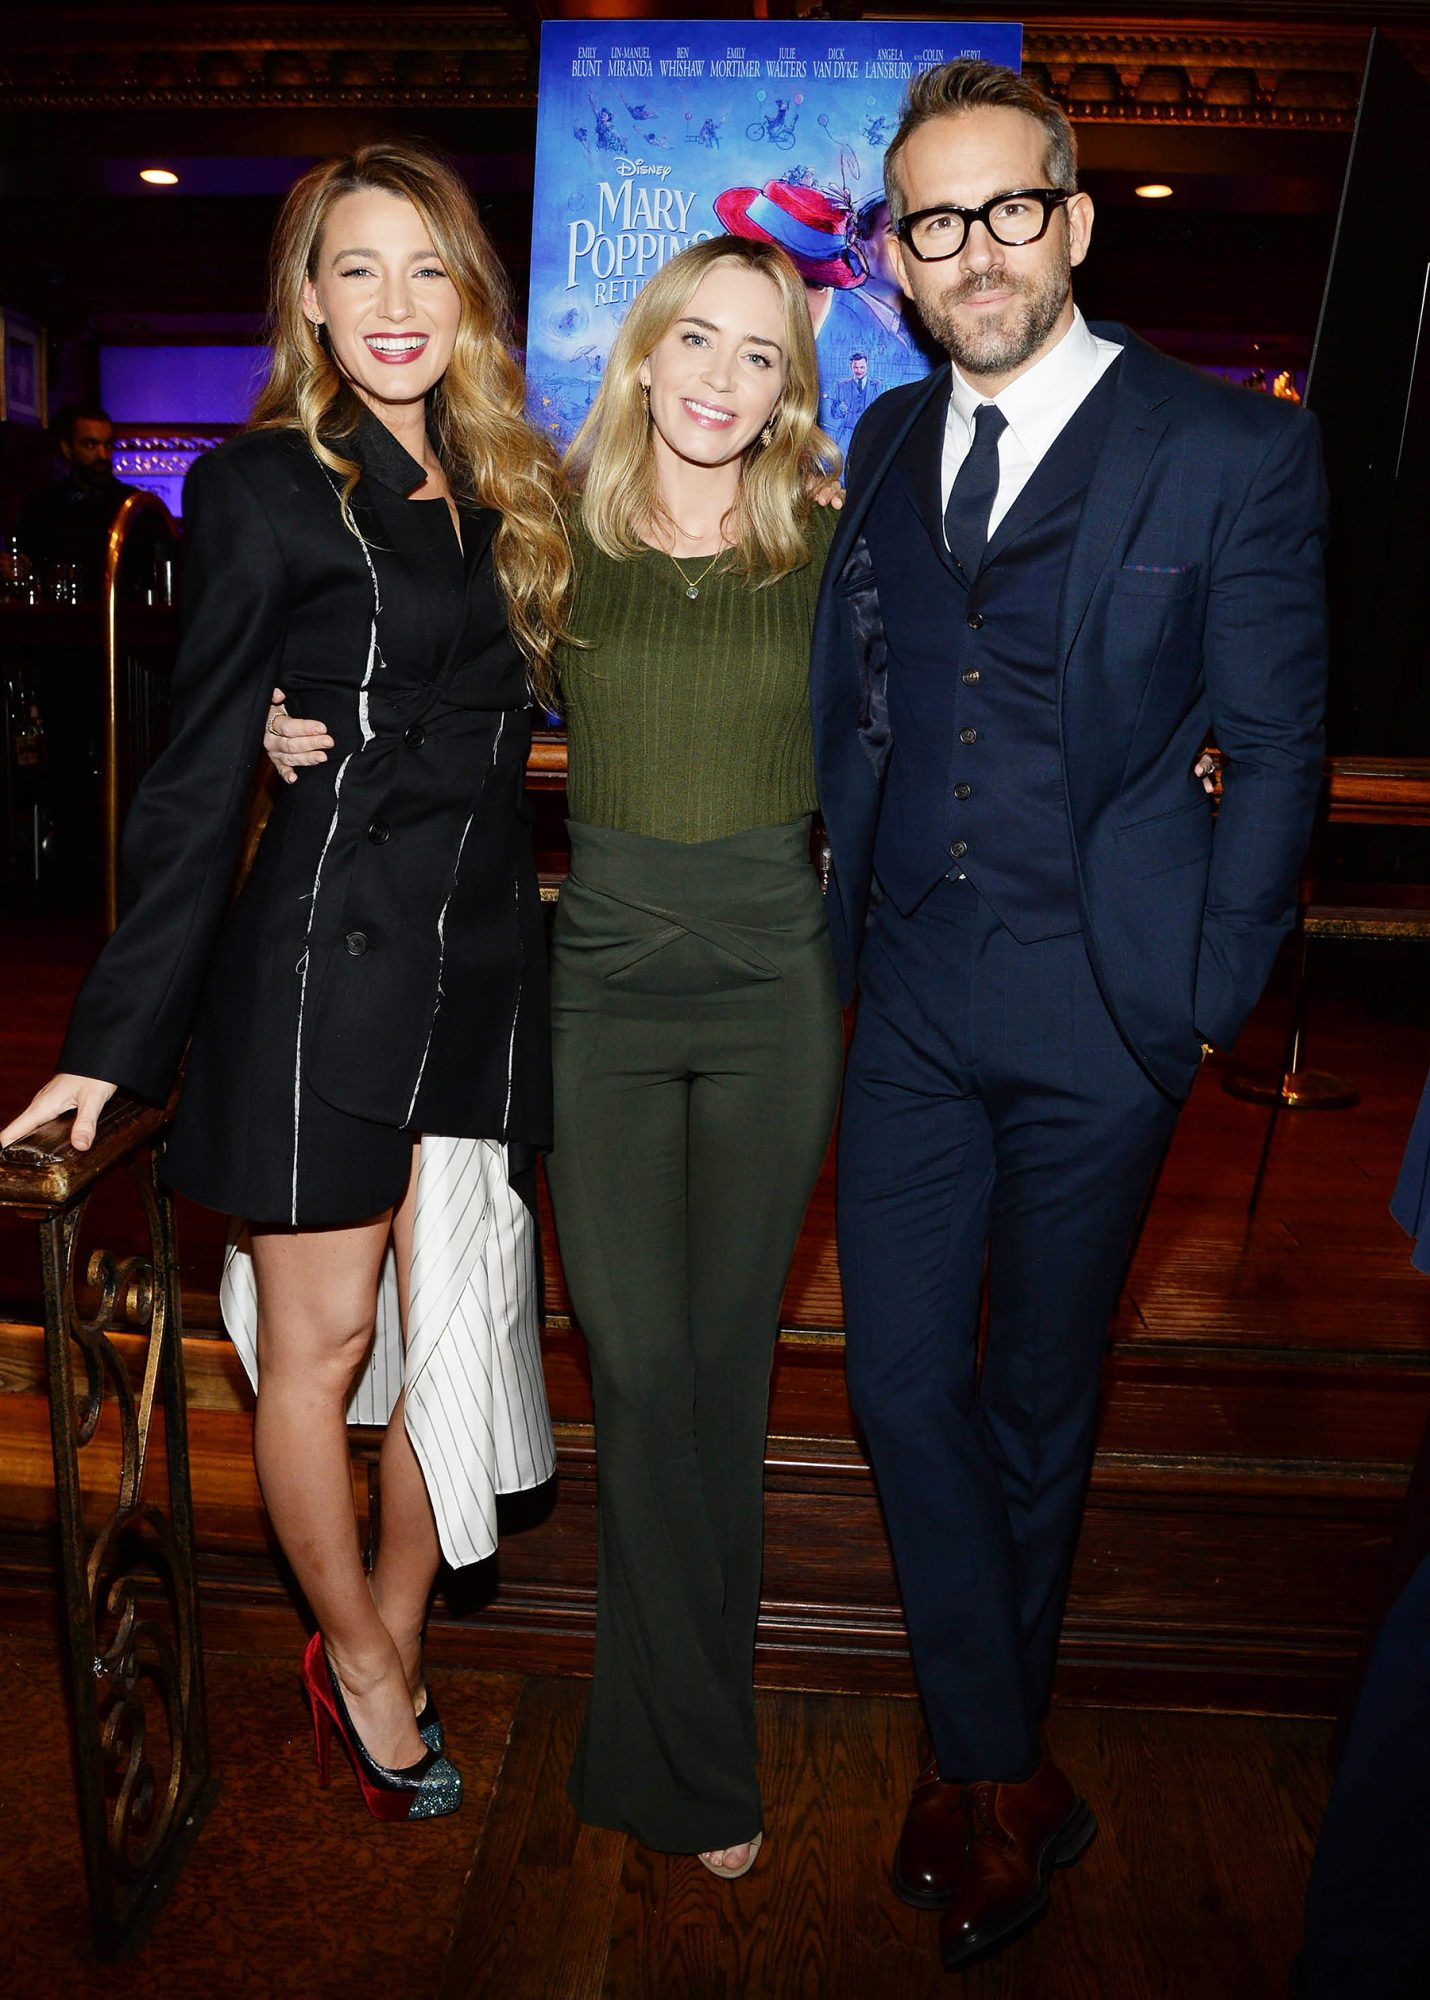 Ryan Reynolds and Blake Lively Host a Reception Followed by a Special Screening of Mary Poppins Returns